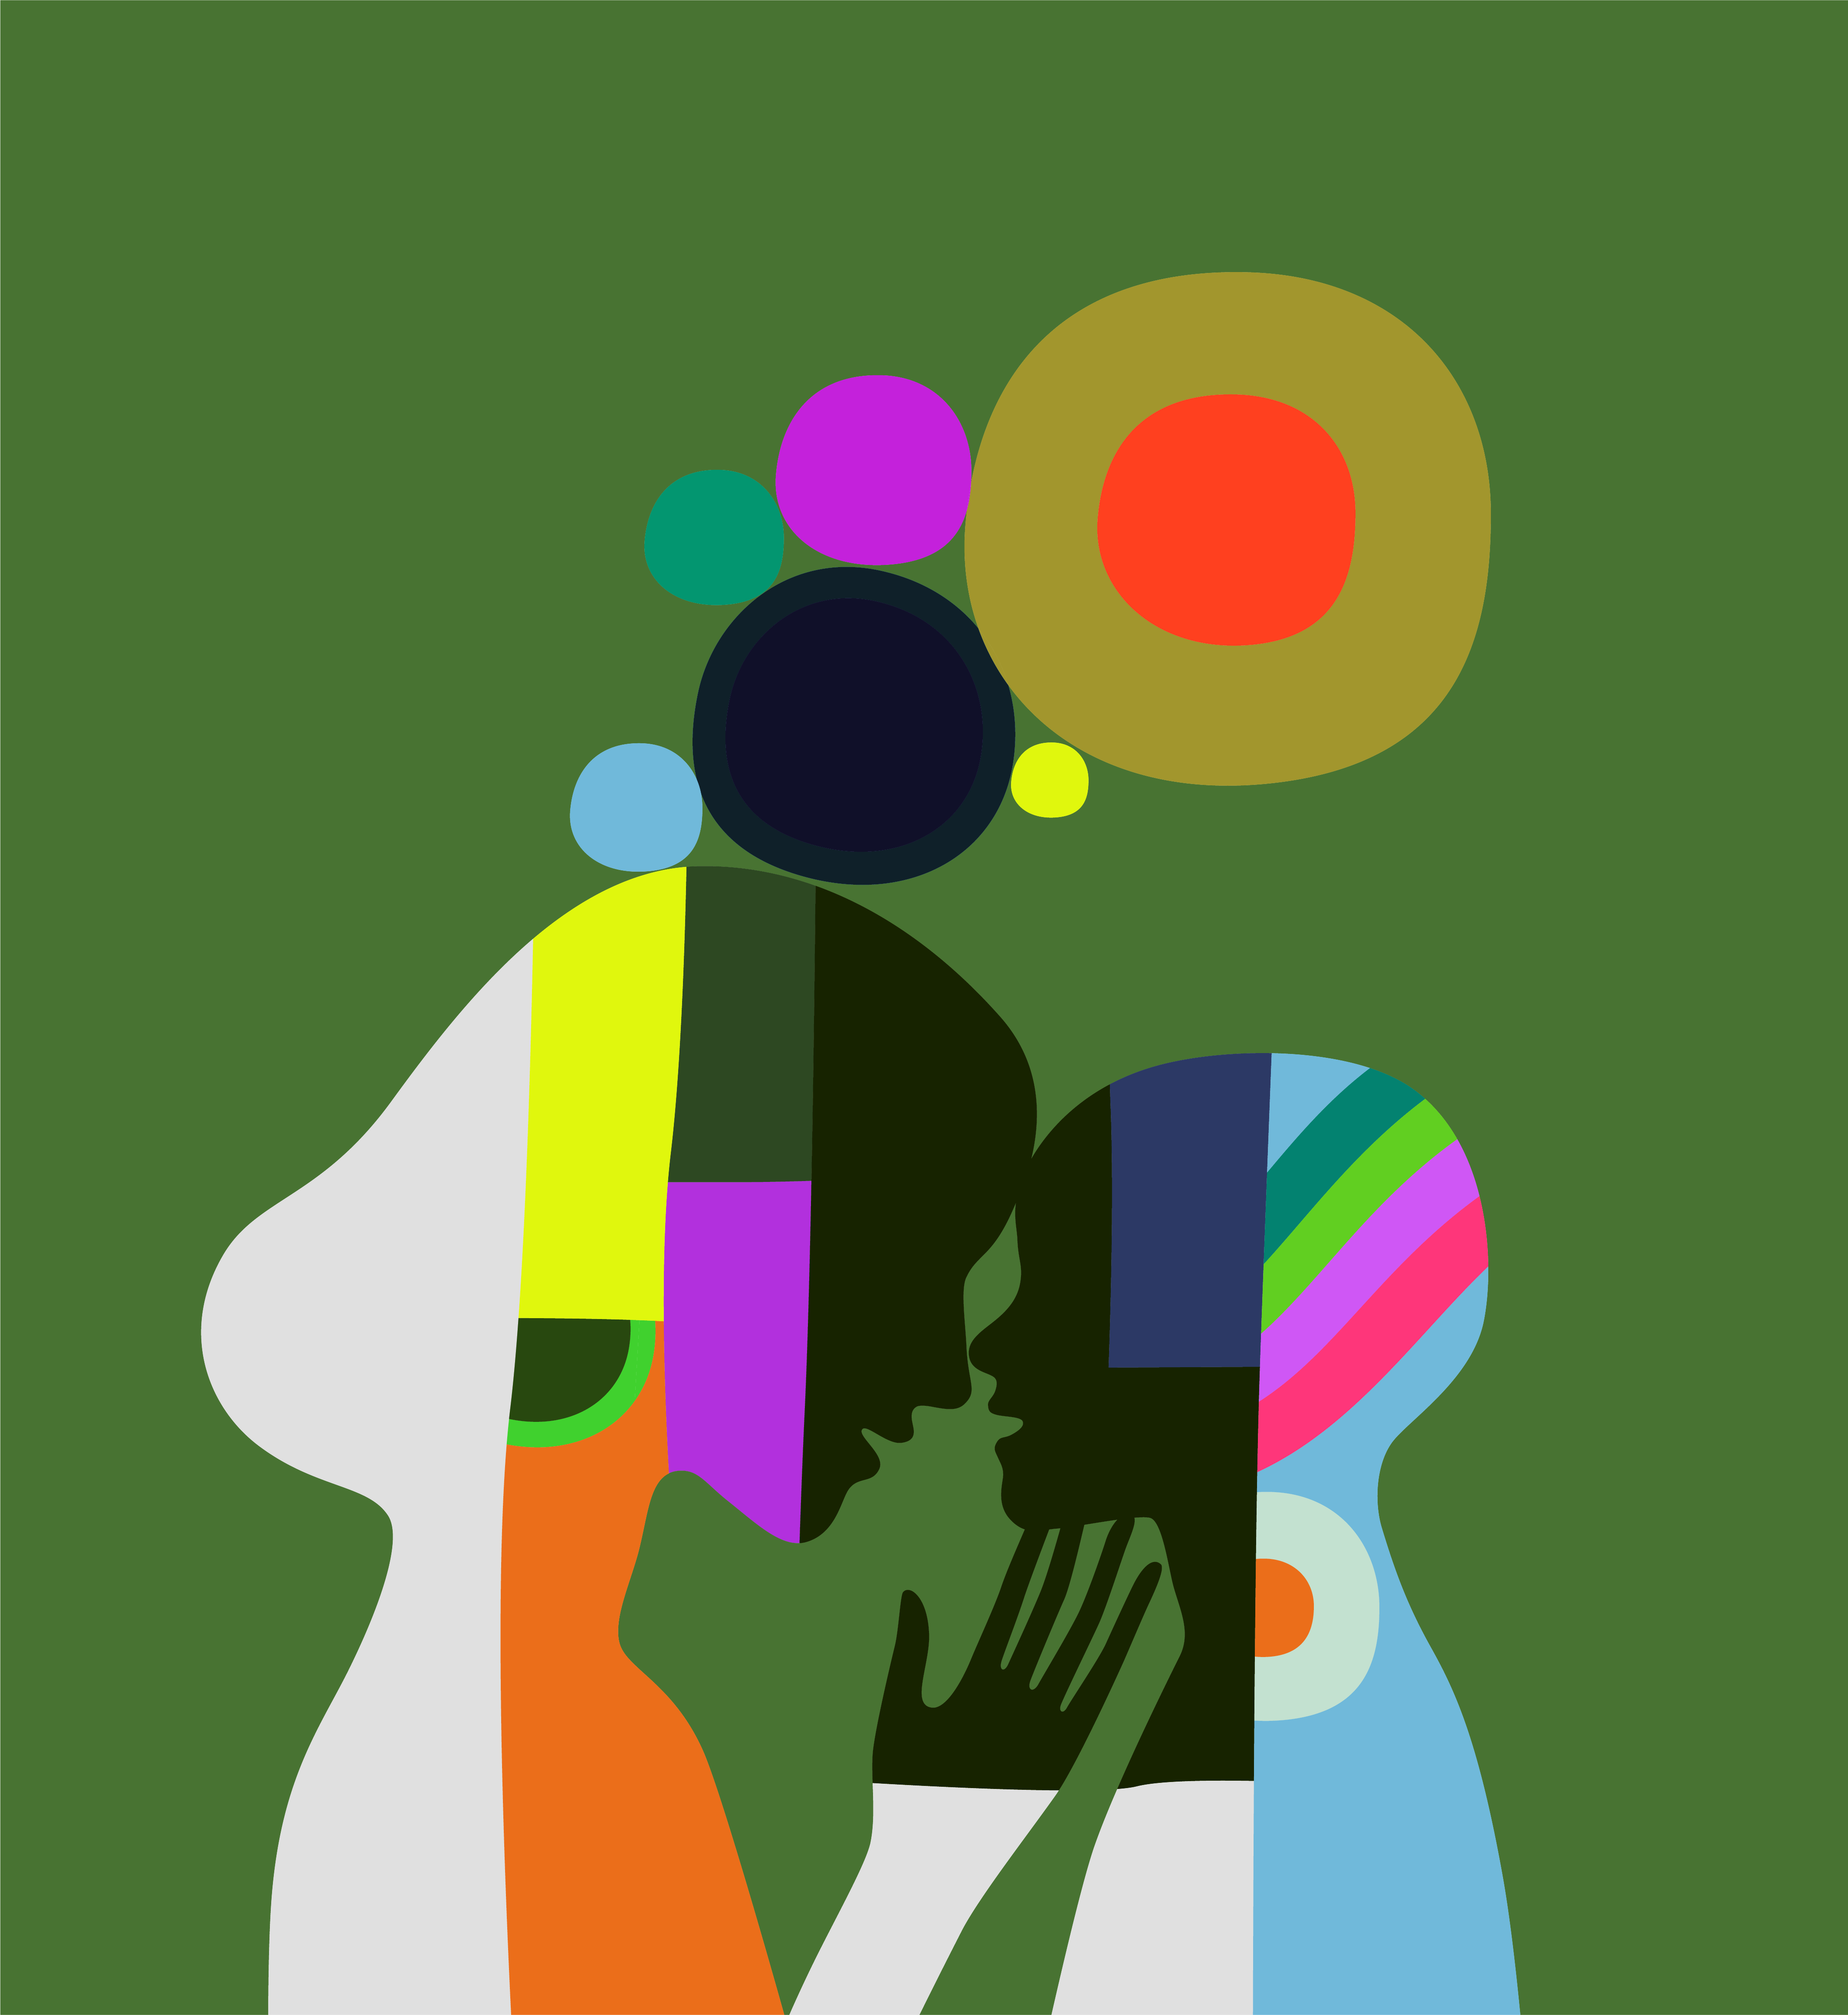 Colourful Kari Modén illustration showing a silhouette of two humans touching